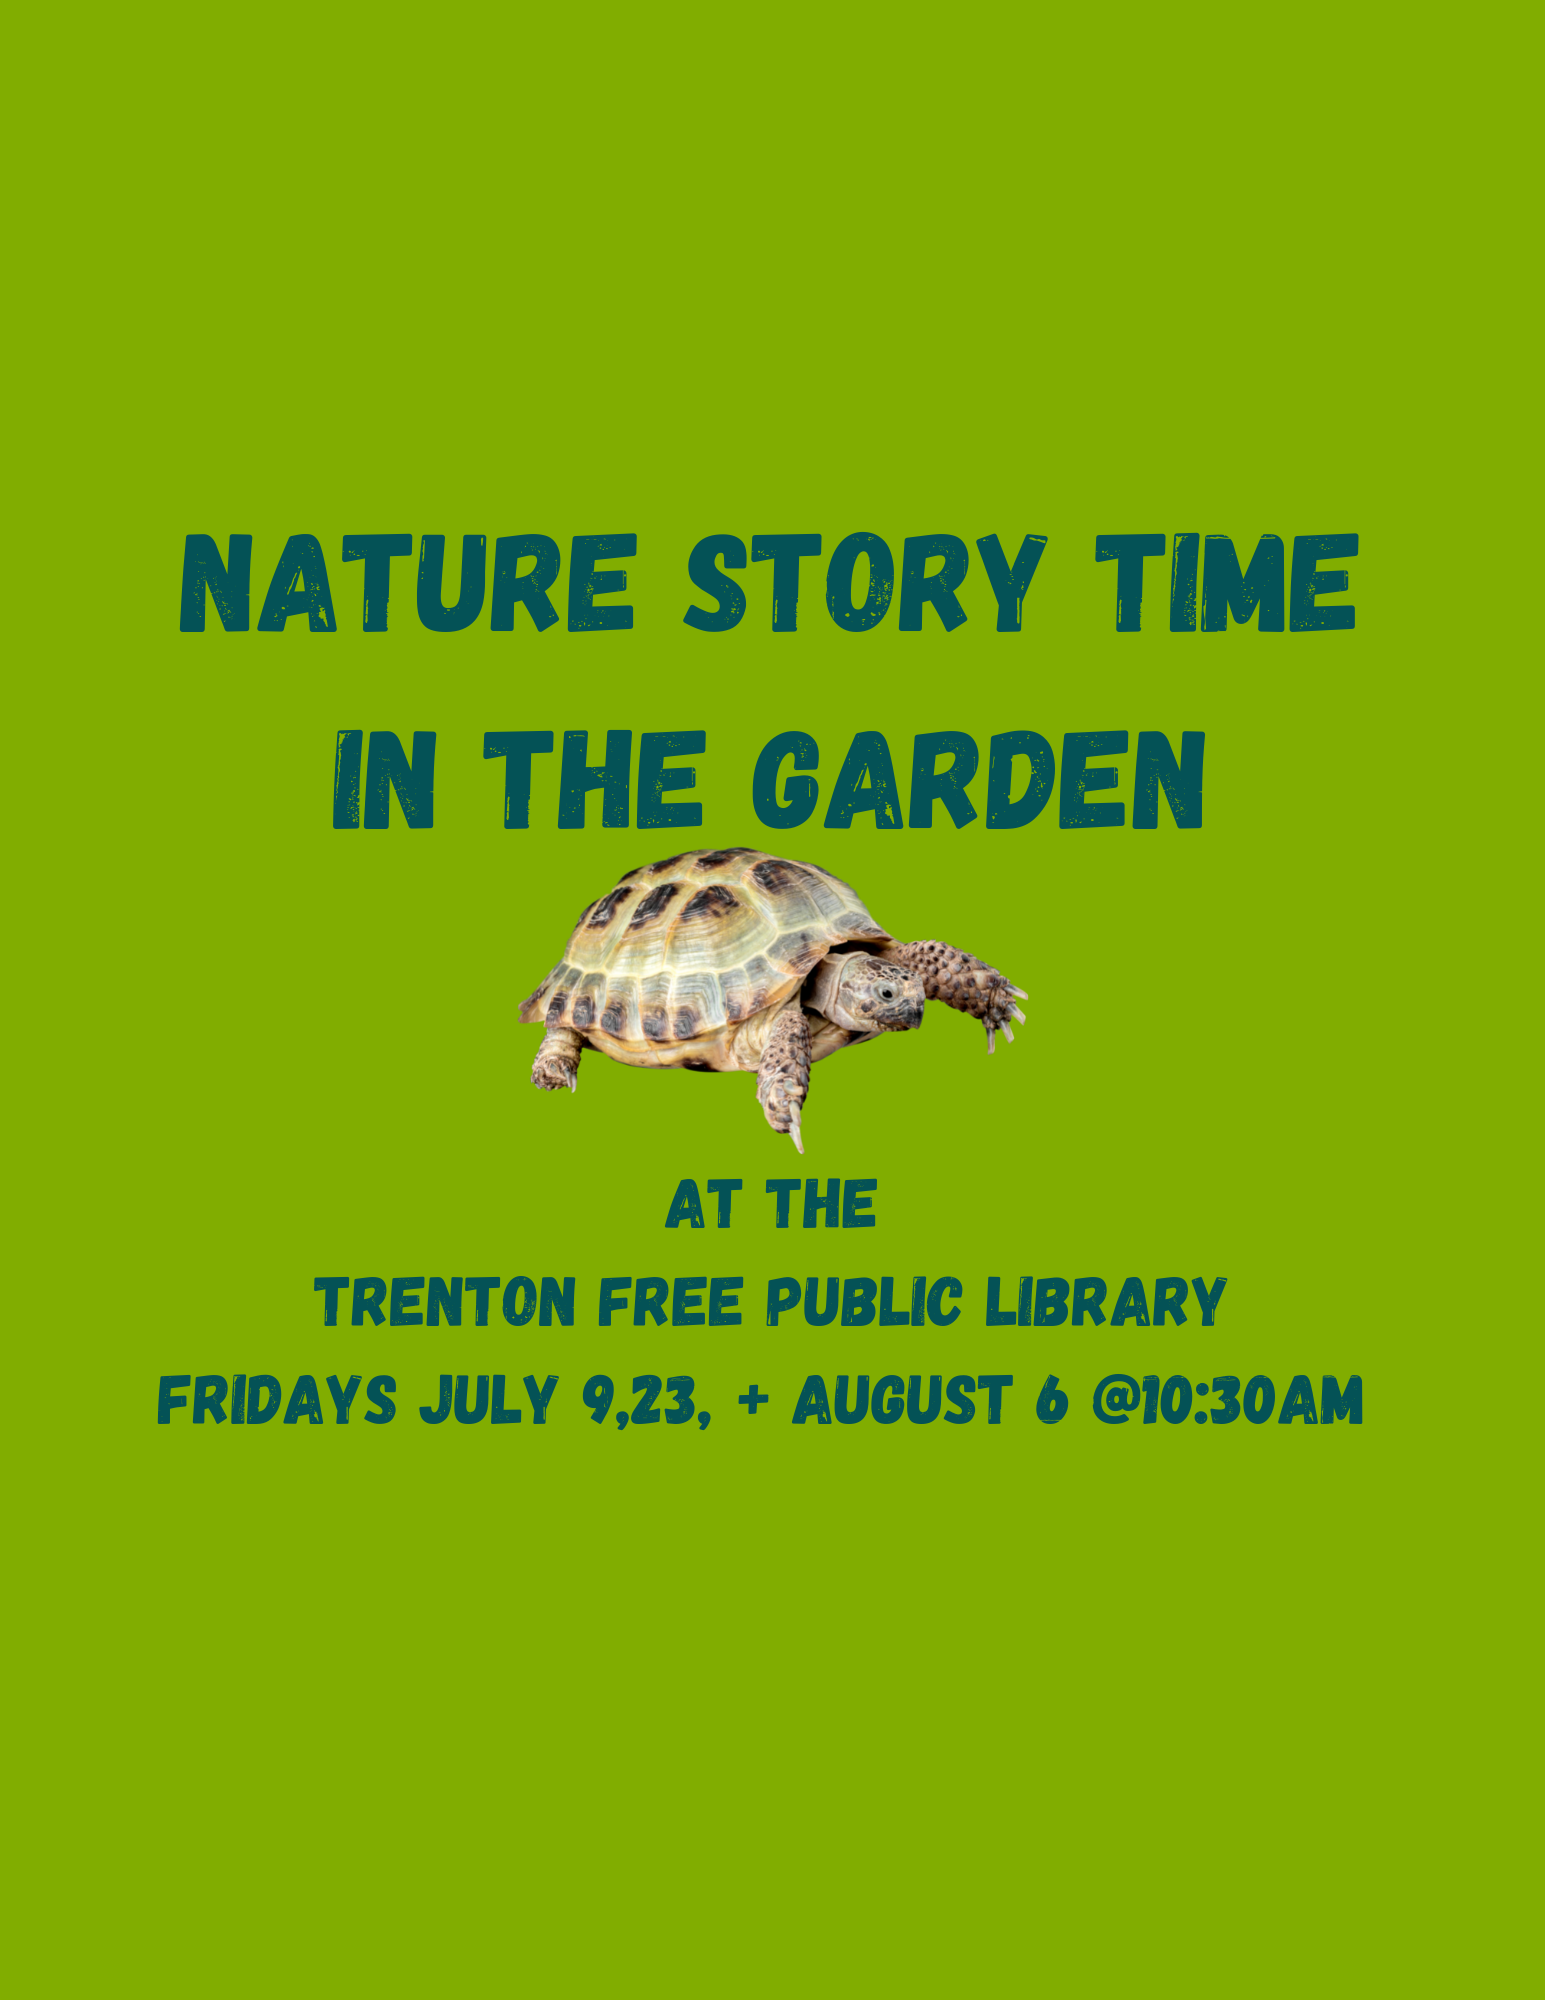 Nature Story Time in the Garden